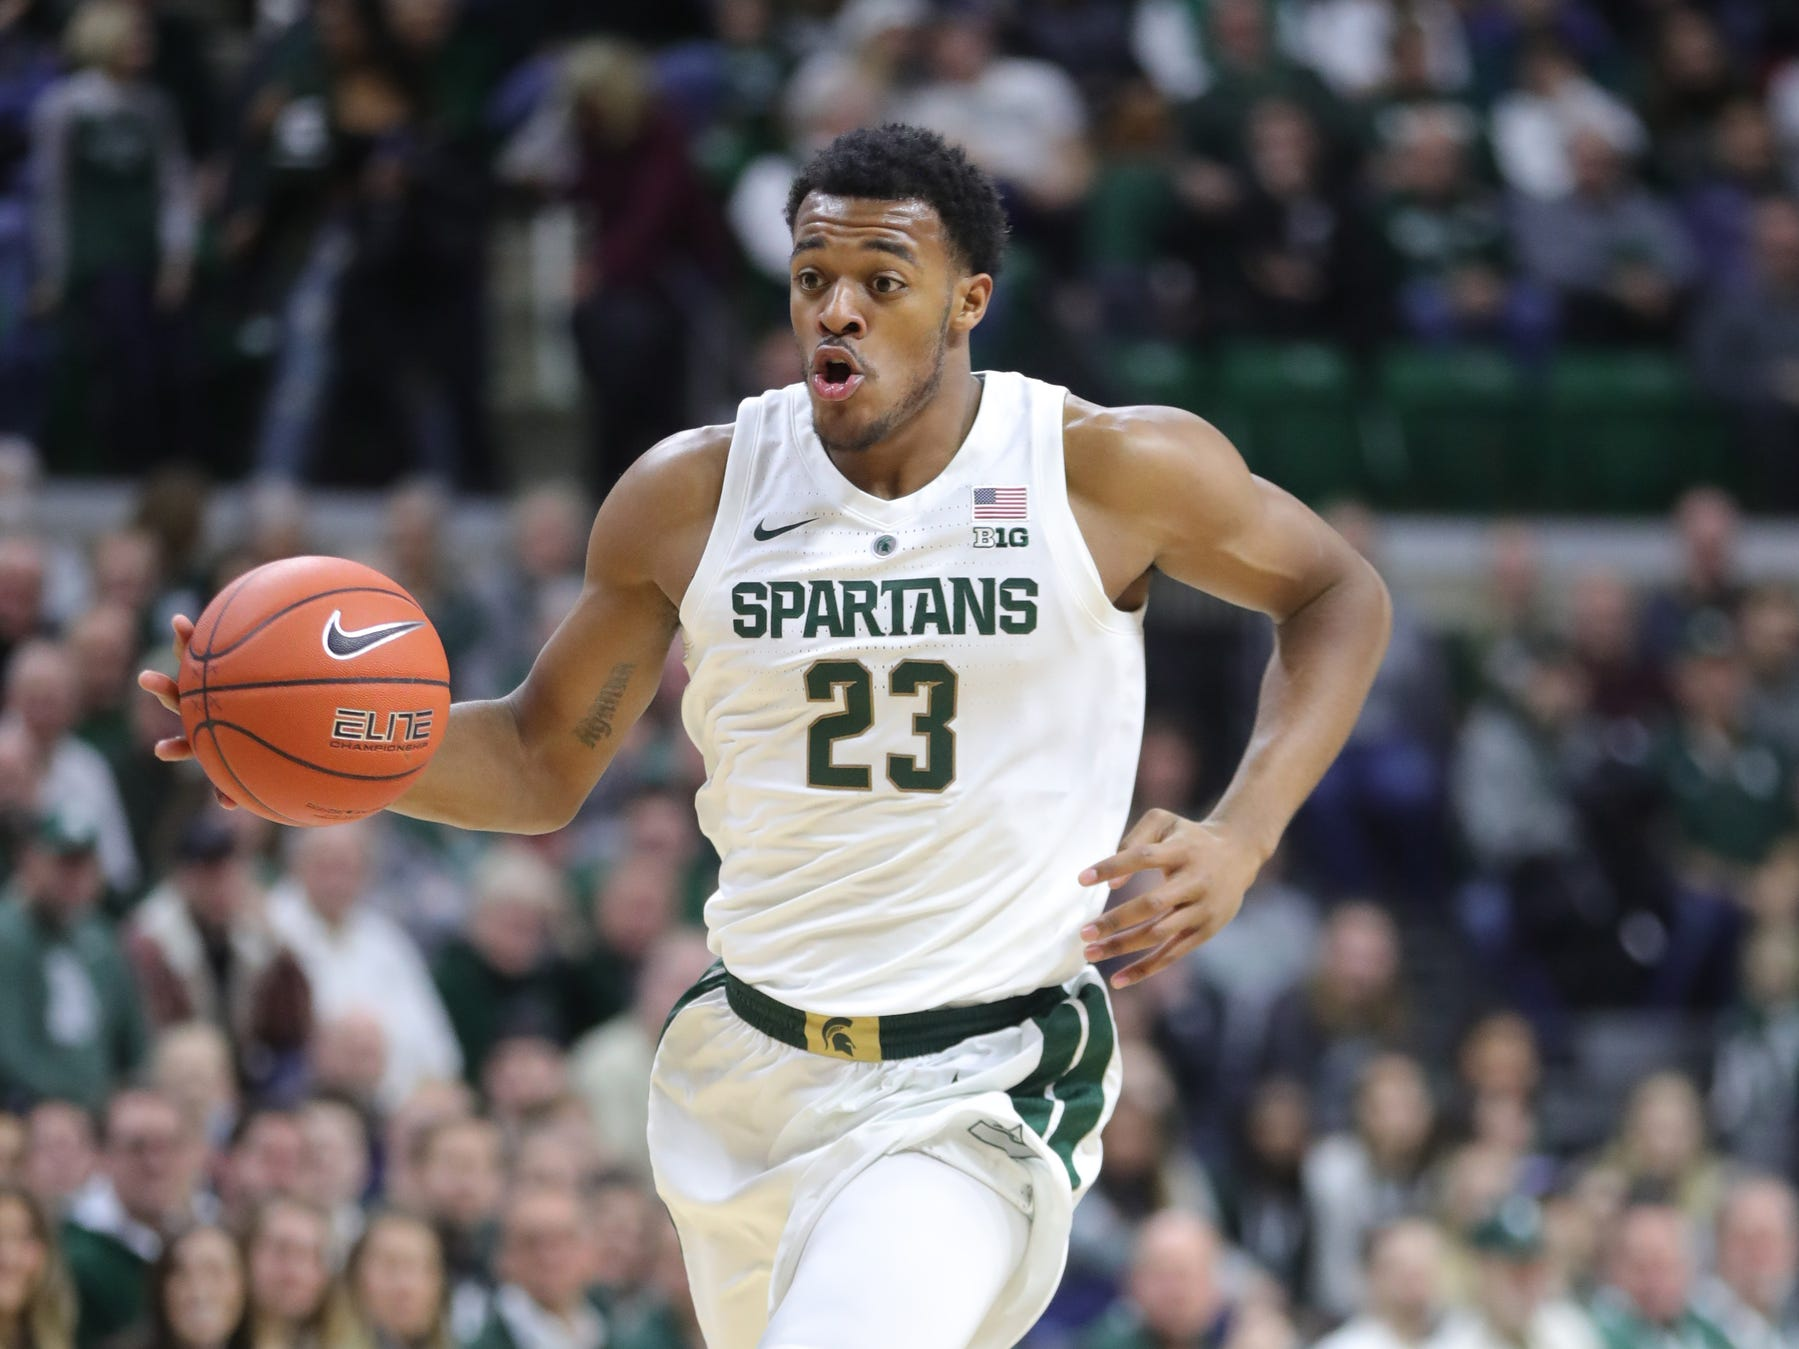 Michigan State forward Xavier Tillman dribbles against Green Bay during the first half Sunday, Dec. 16, 2018 at the Breslin Center in East Lansing, Mich.